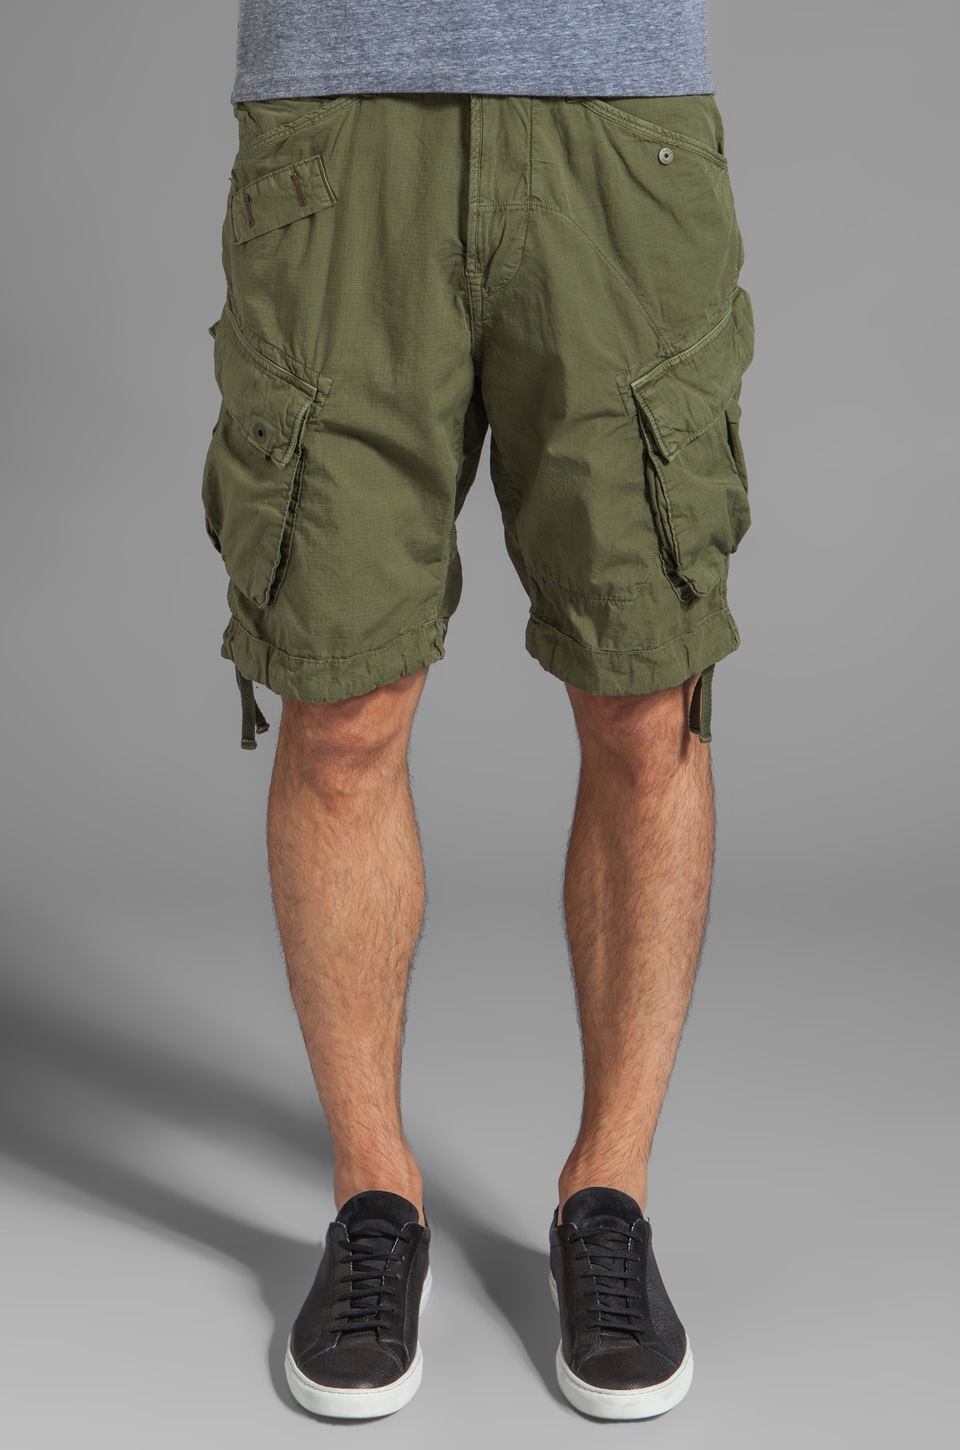 G-Star Rovic Loose Cargo Short in Sage